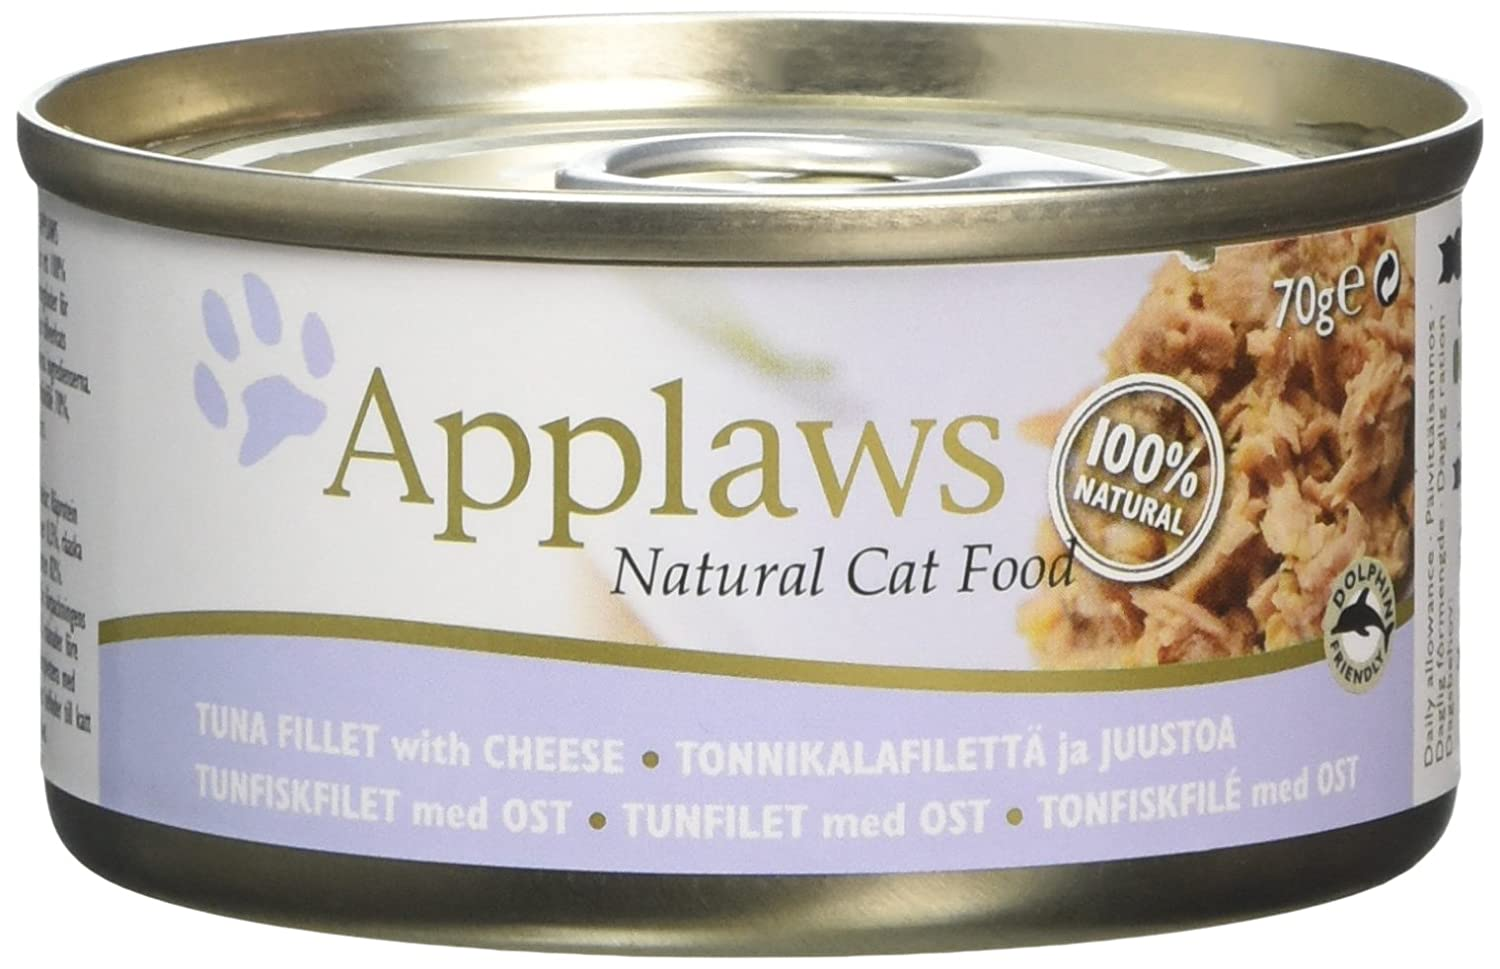 Applaws - Boîte pour chat - Filet de thon/fromage - 70 g - Lot de 24